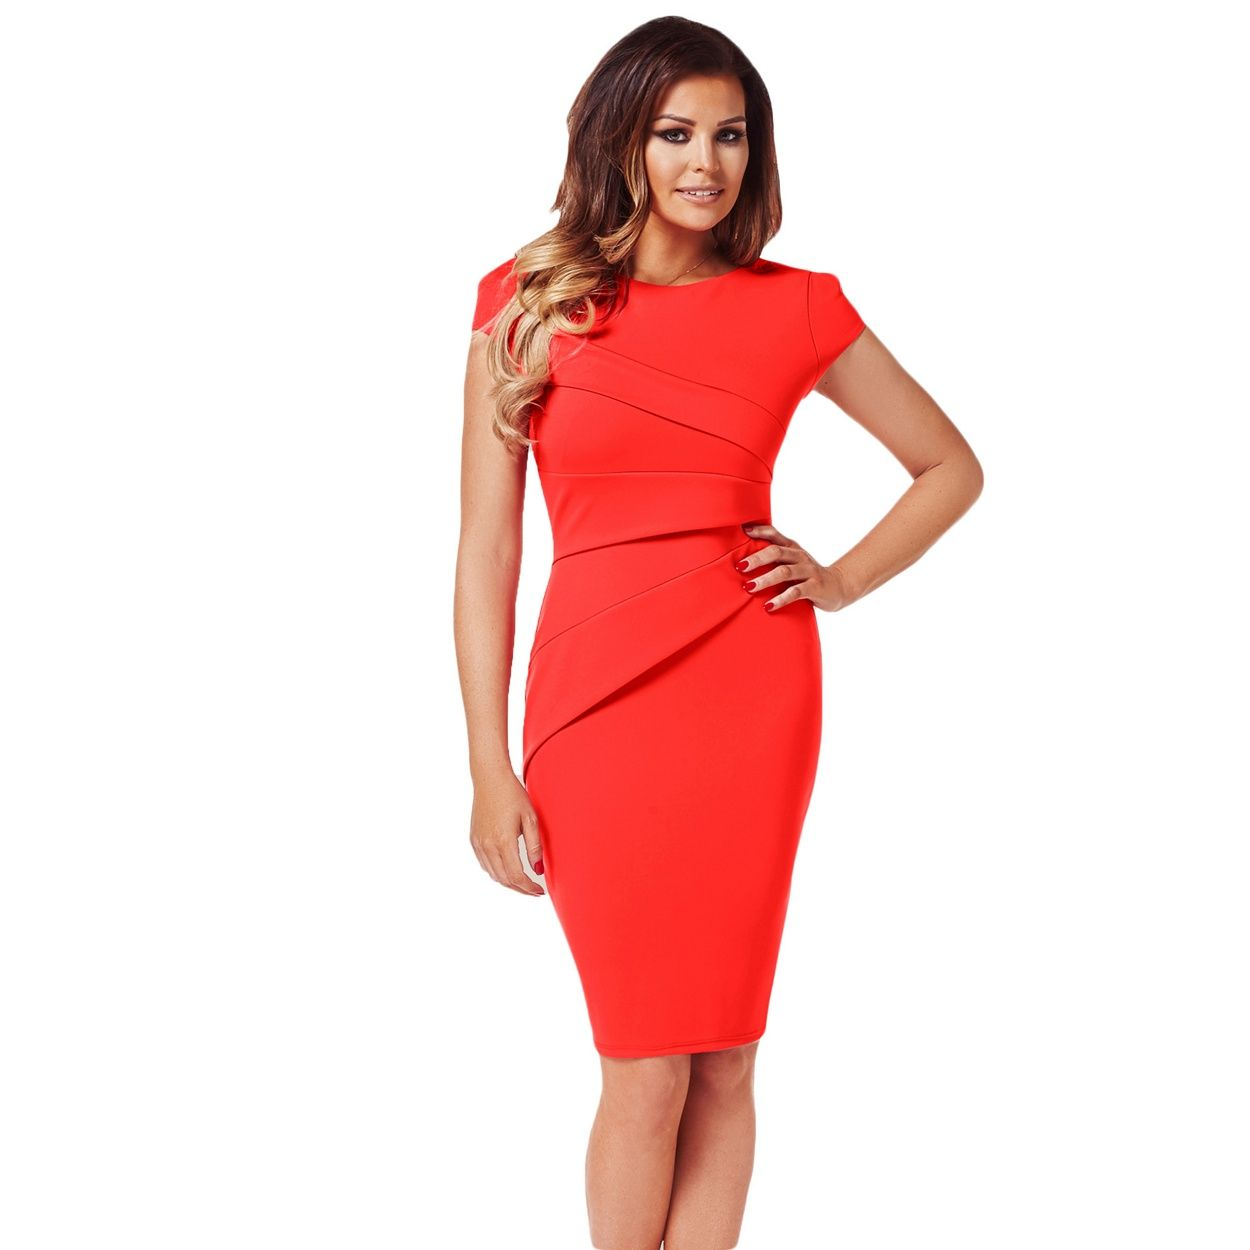 This cap sleeve panel dress by Jessica Wright is sophisticated and